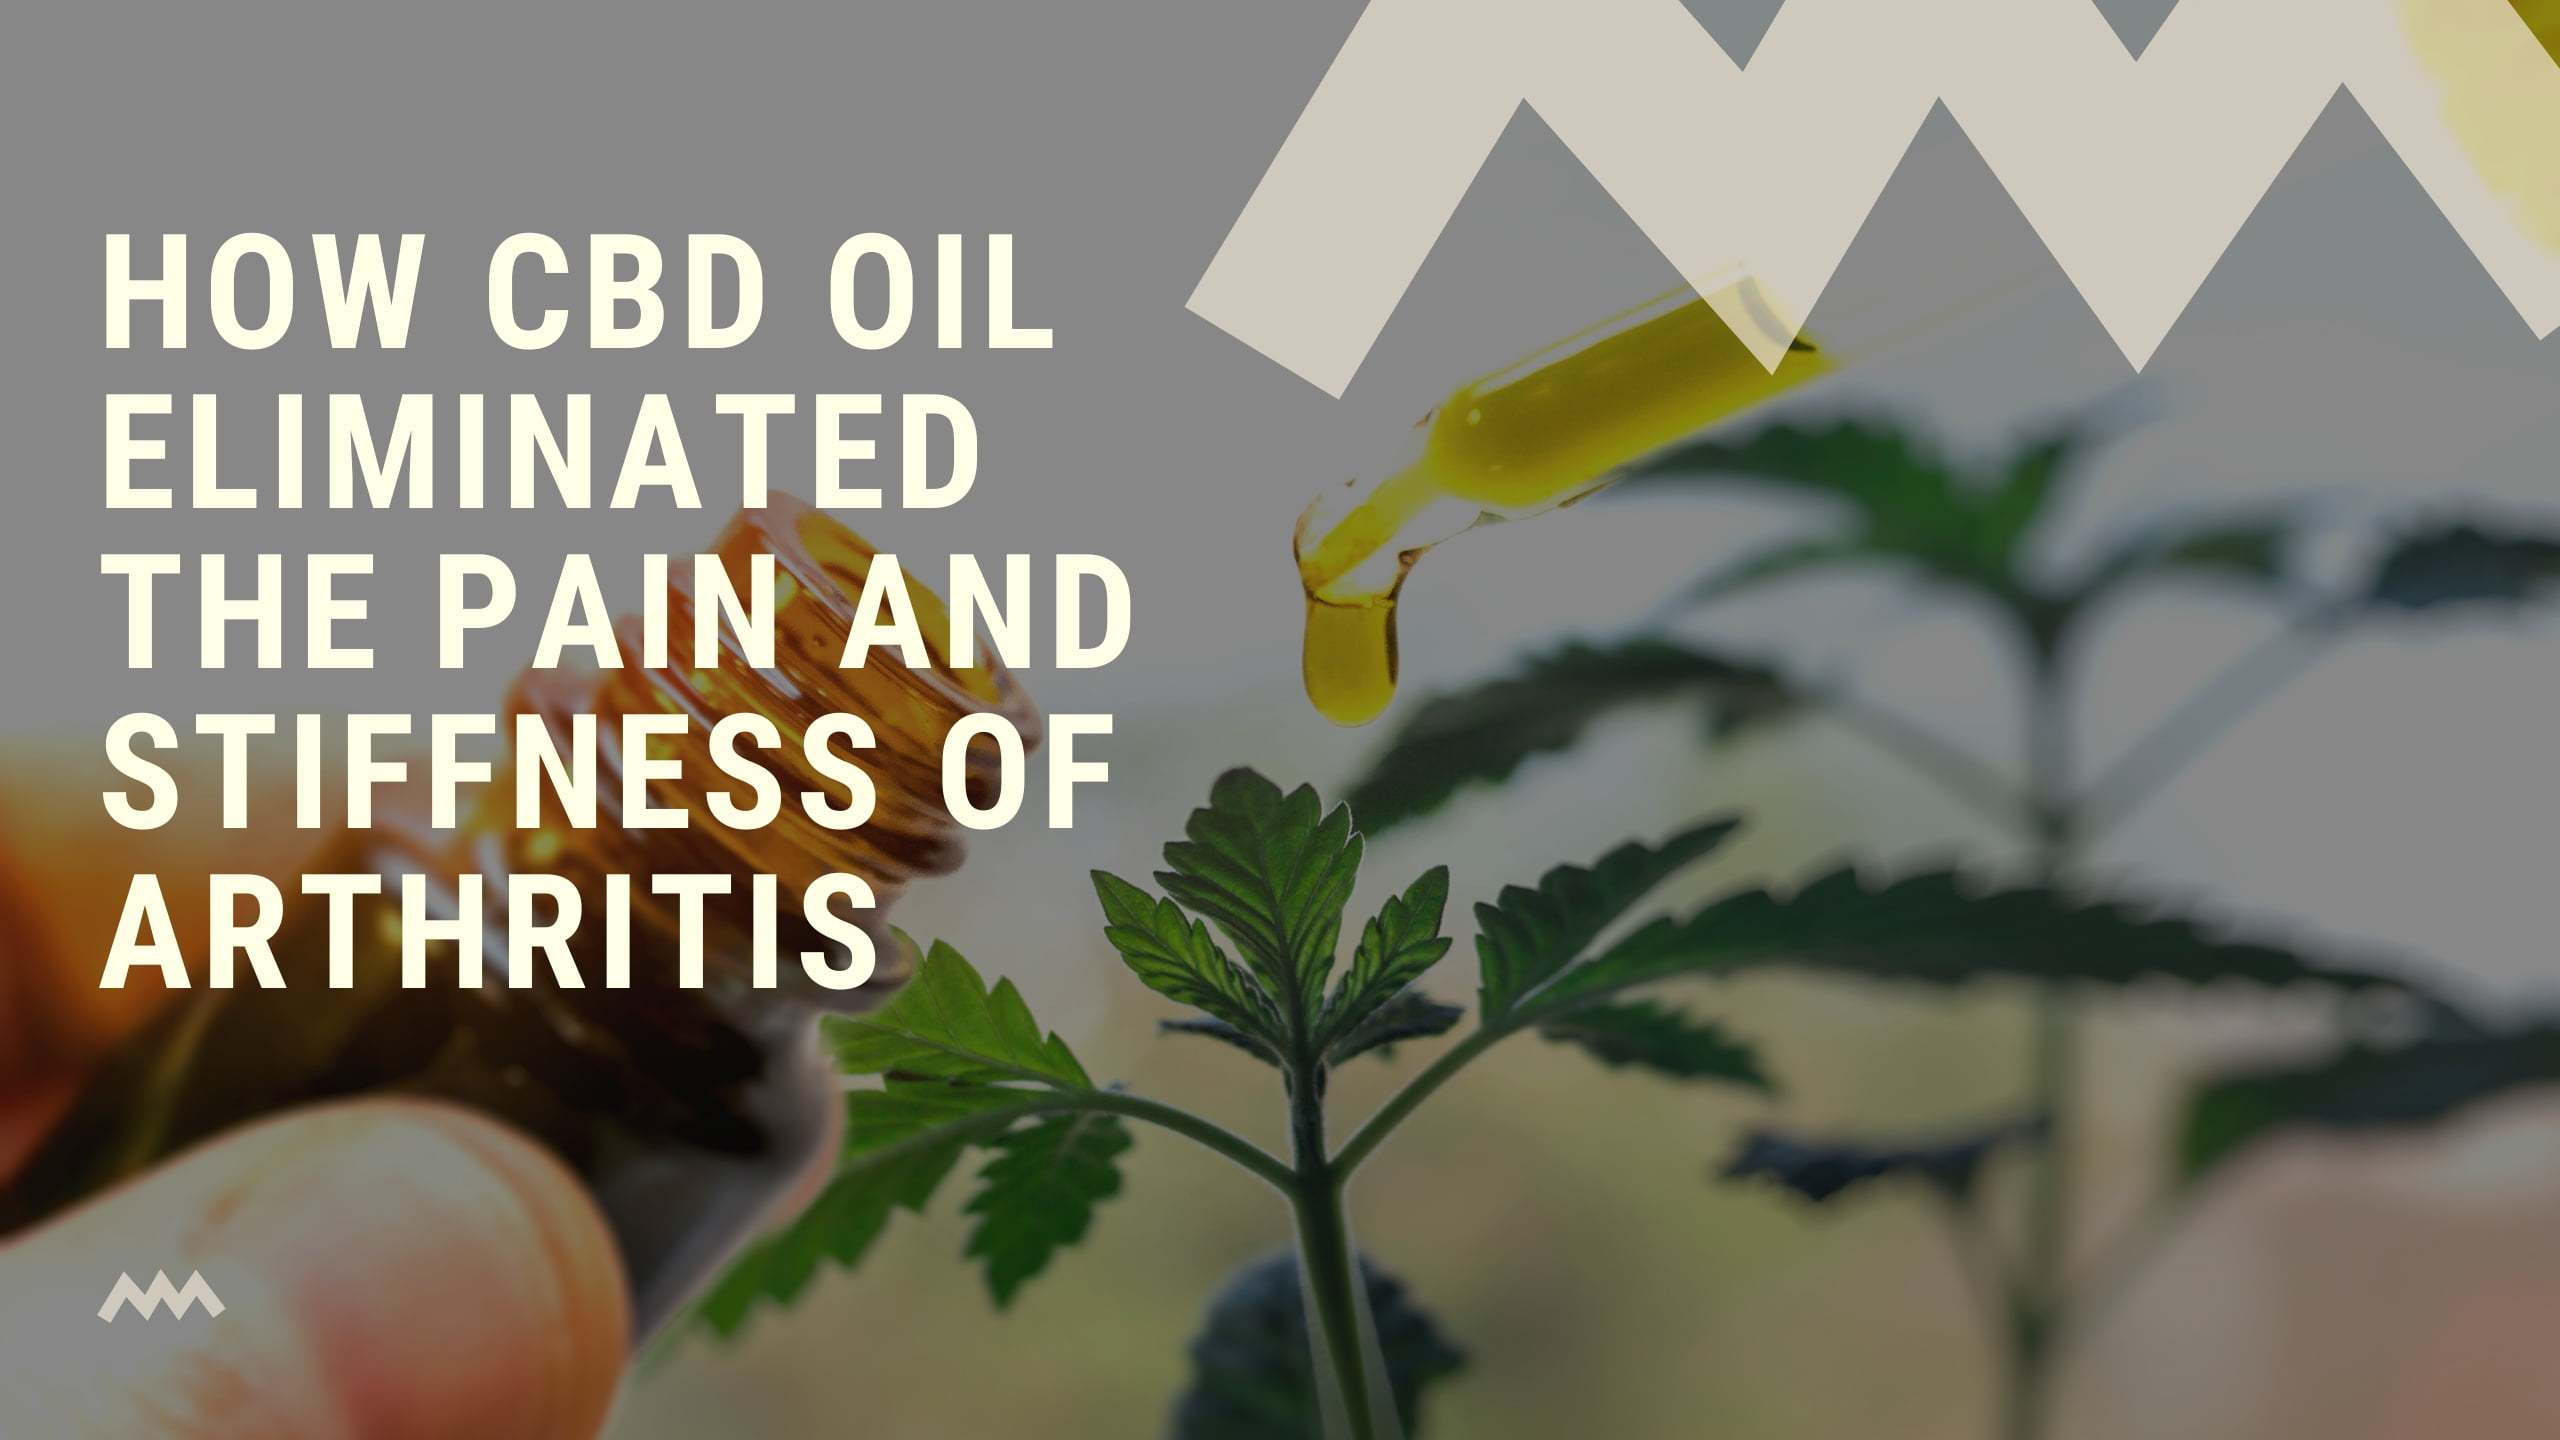 How CBD Oil Eliminated the Pain and Stiffness of Arthritis